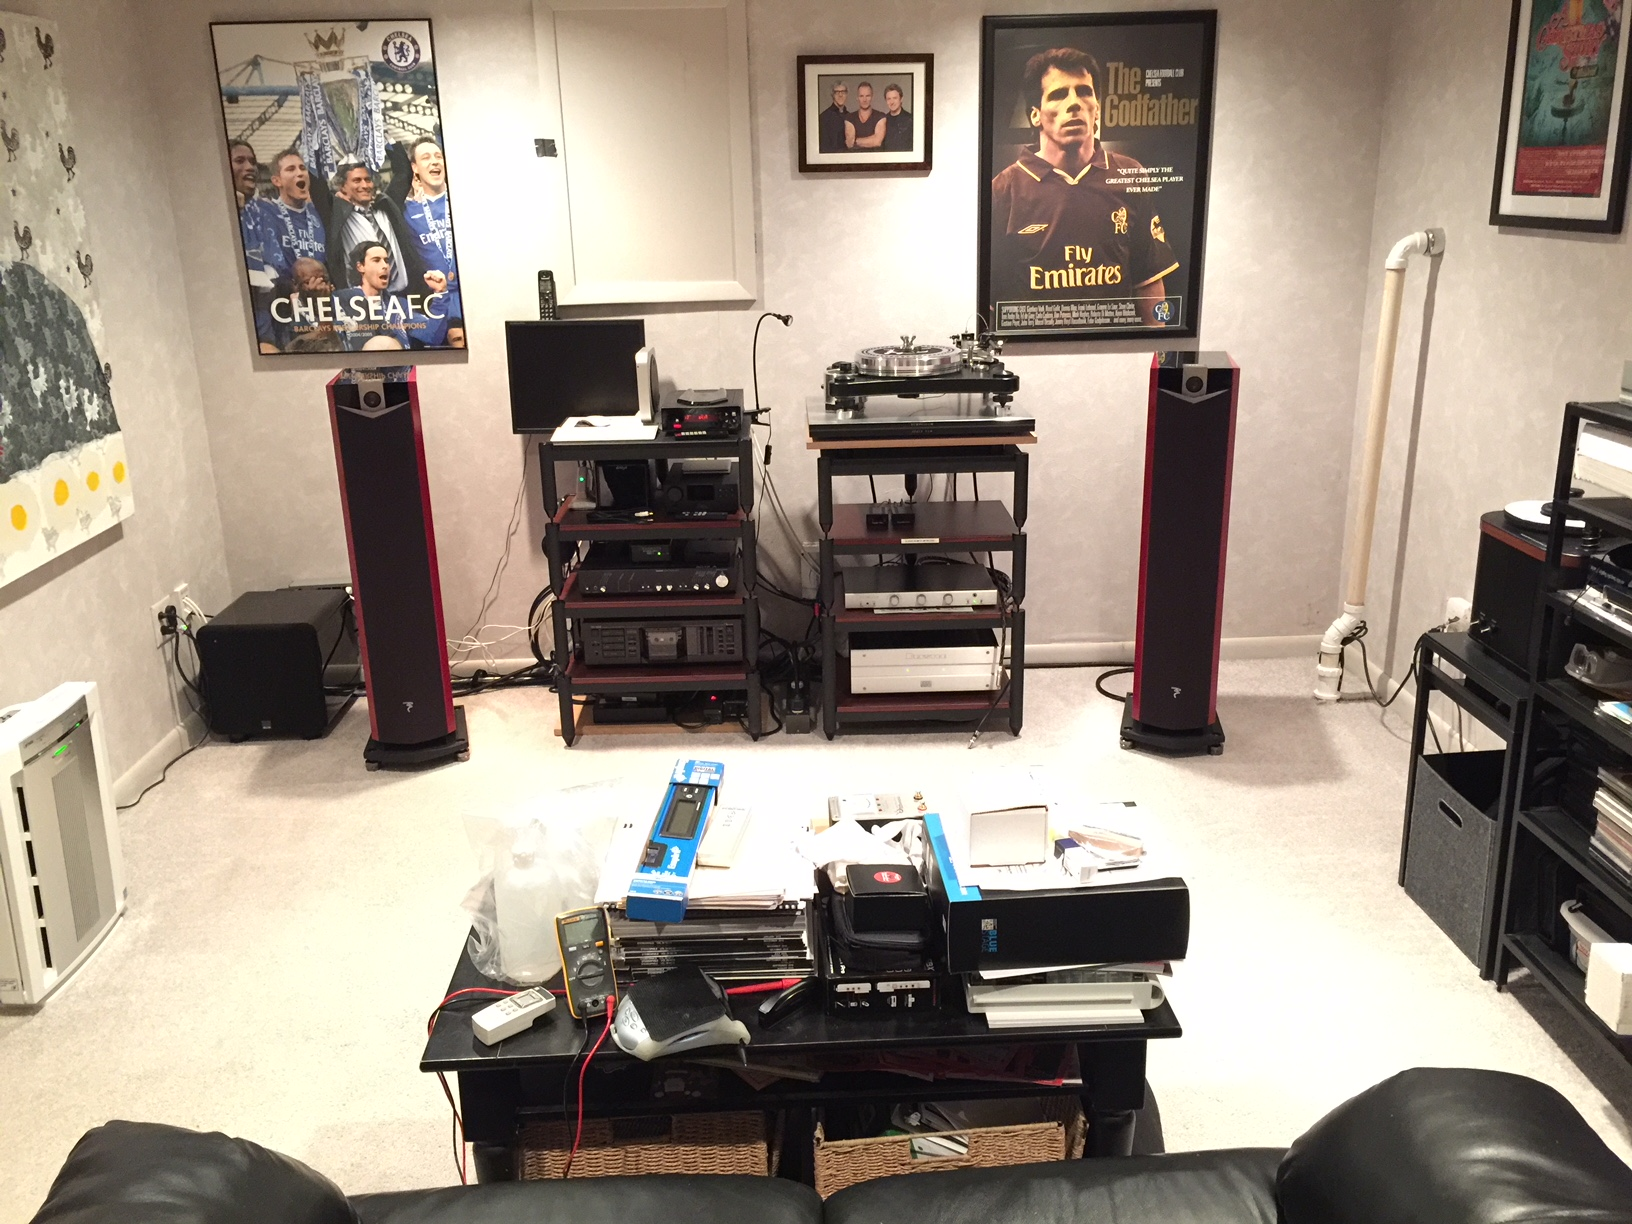 Using Anti-Mode 8033S-II (DSPeaker) for 2 Channel high end